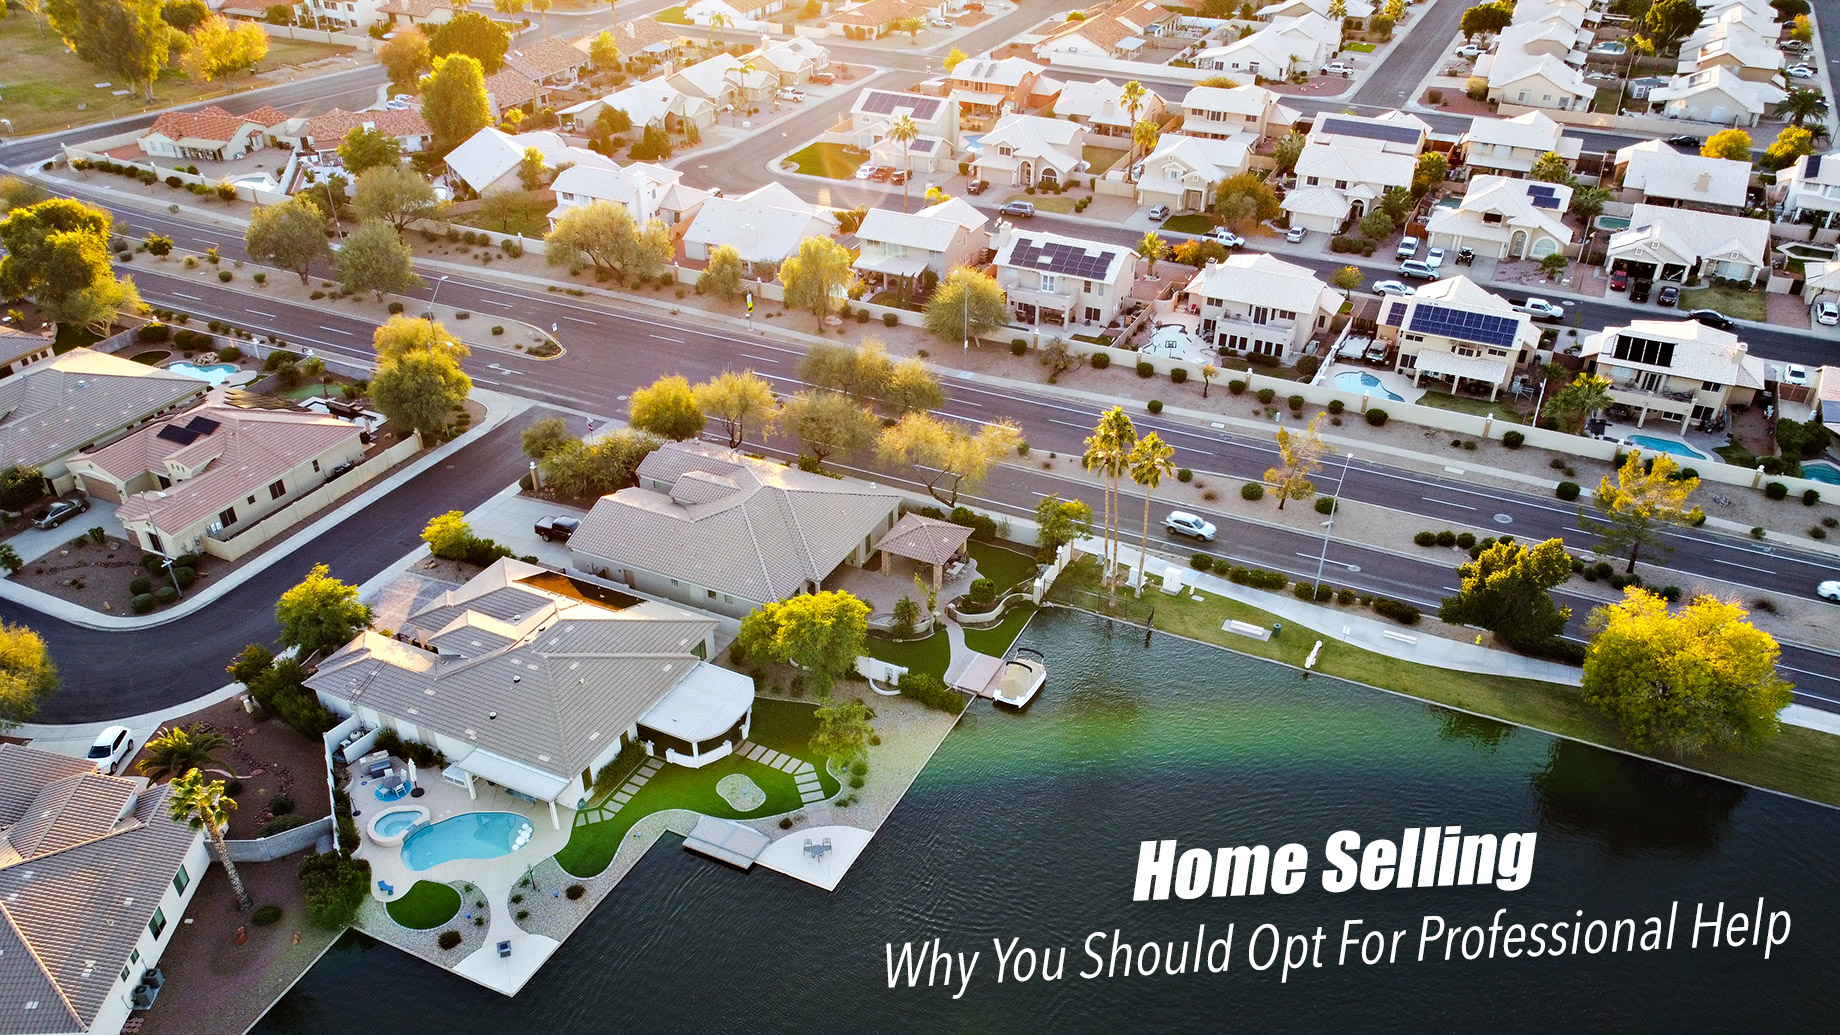 Home Selling - Why You Should Opt For Professional Help